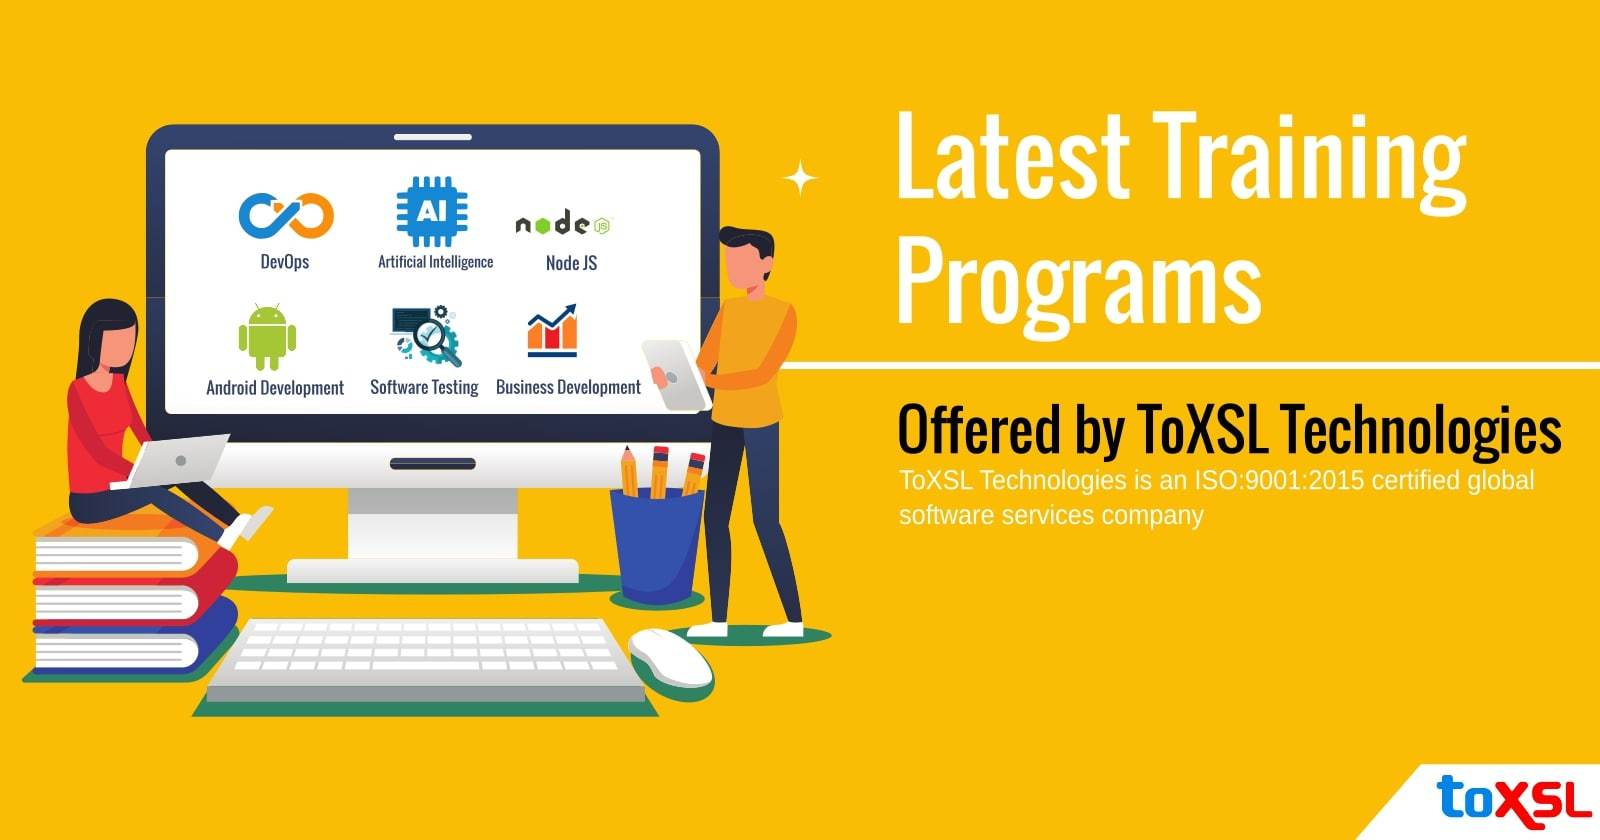 Latest Training Programs Offered by ToXSL Technologies